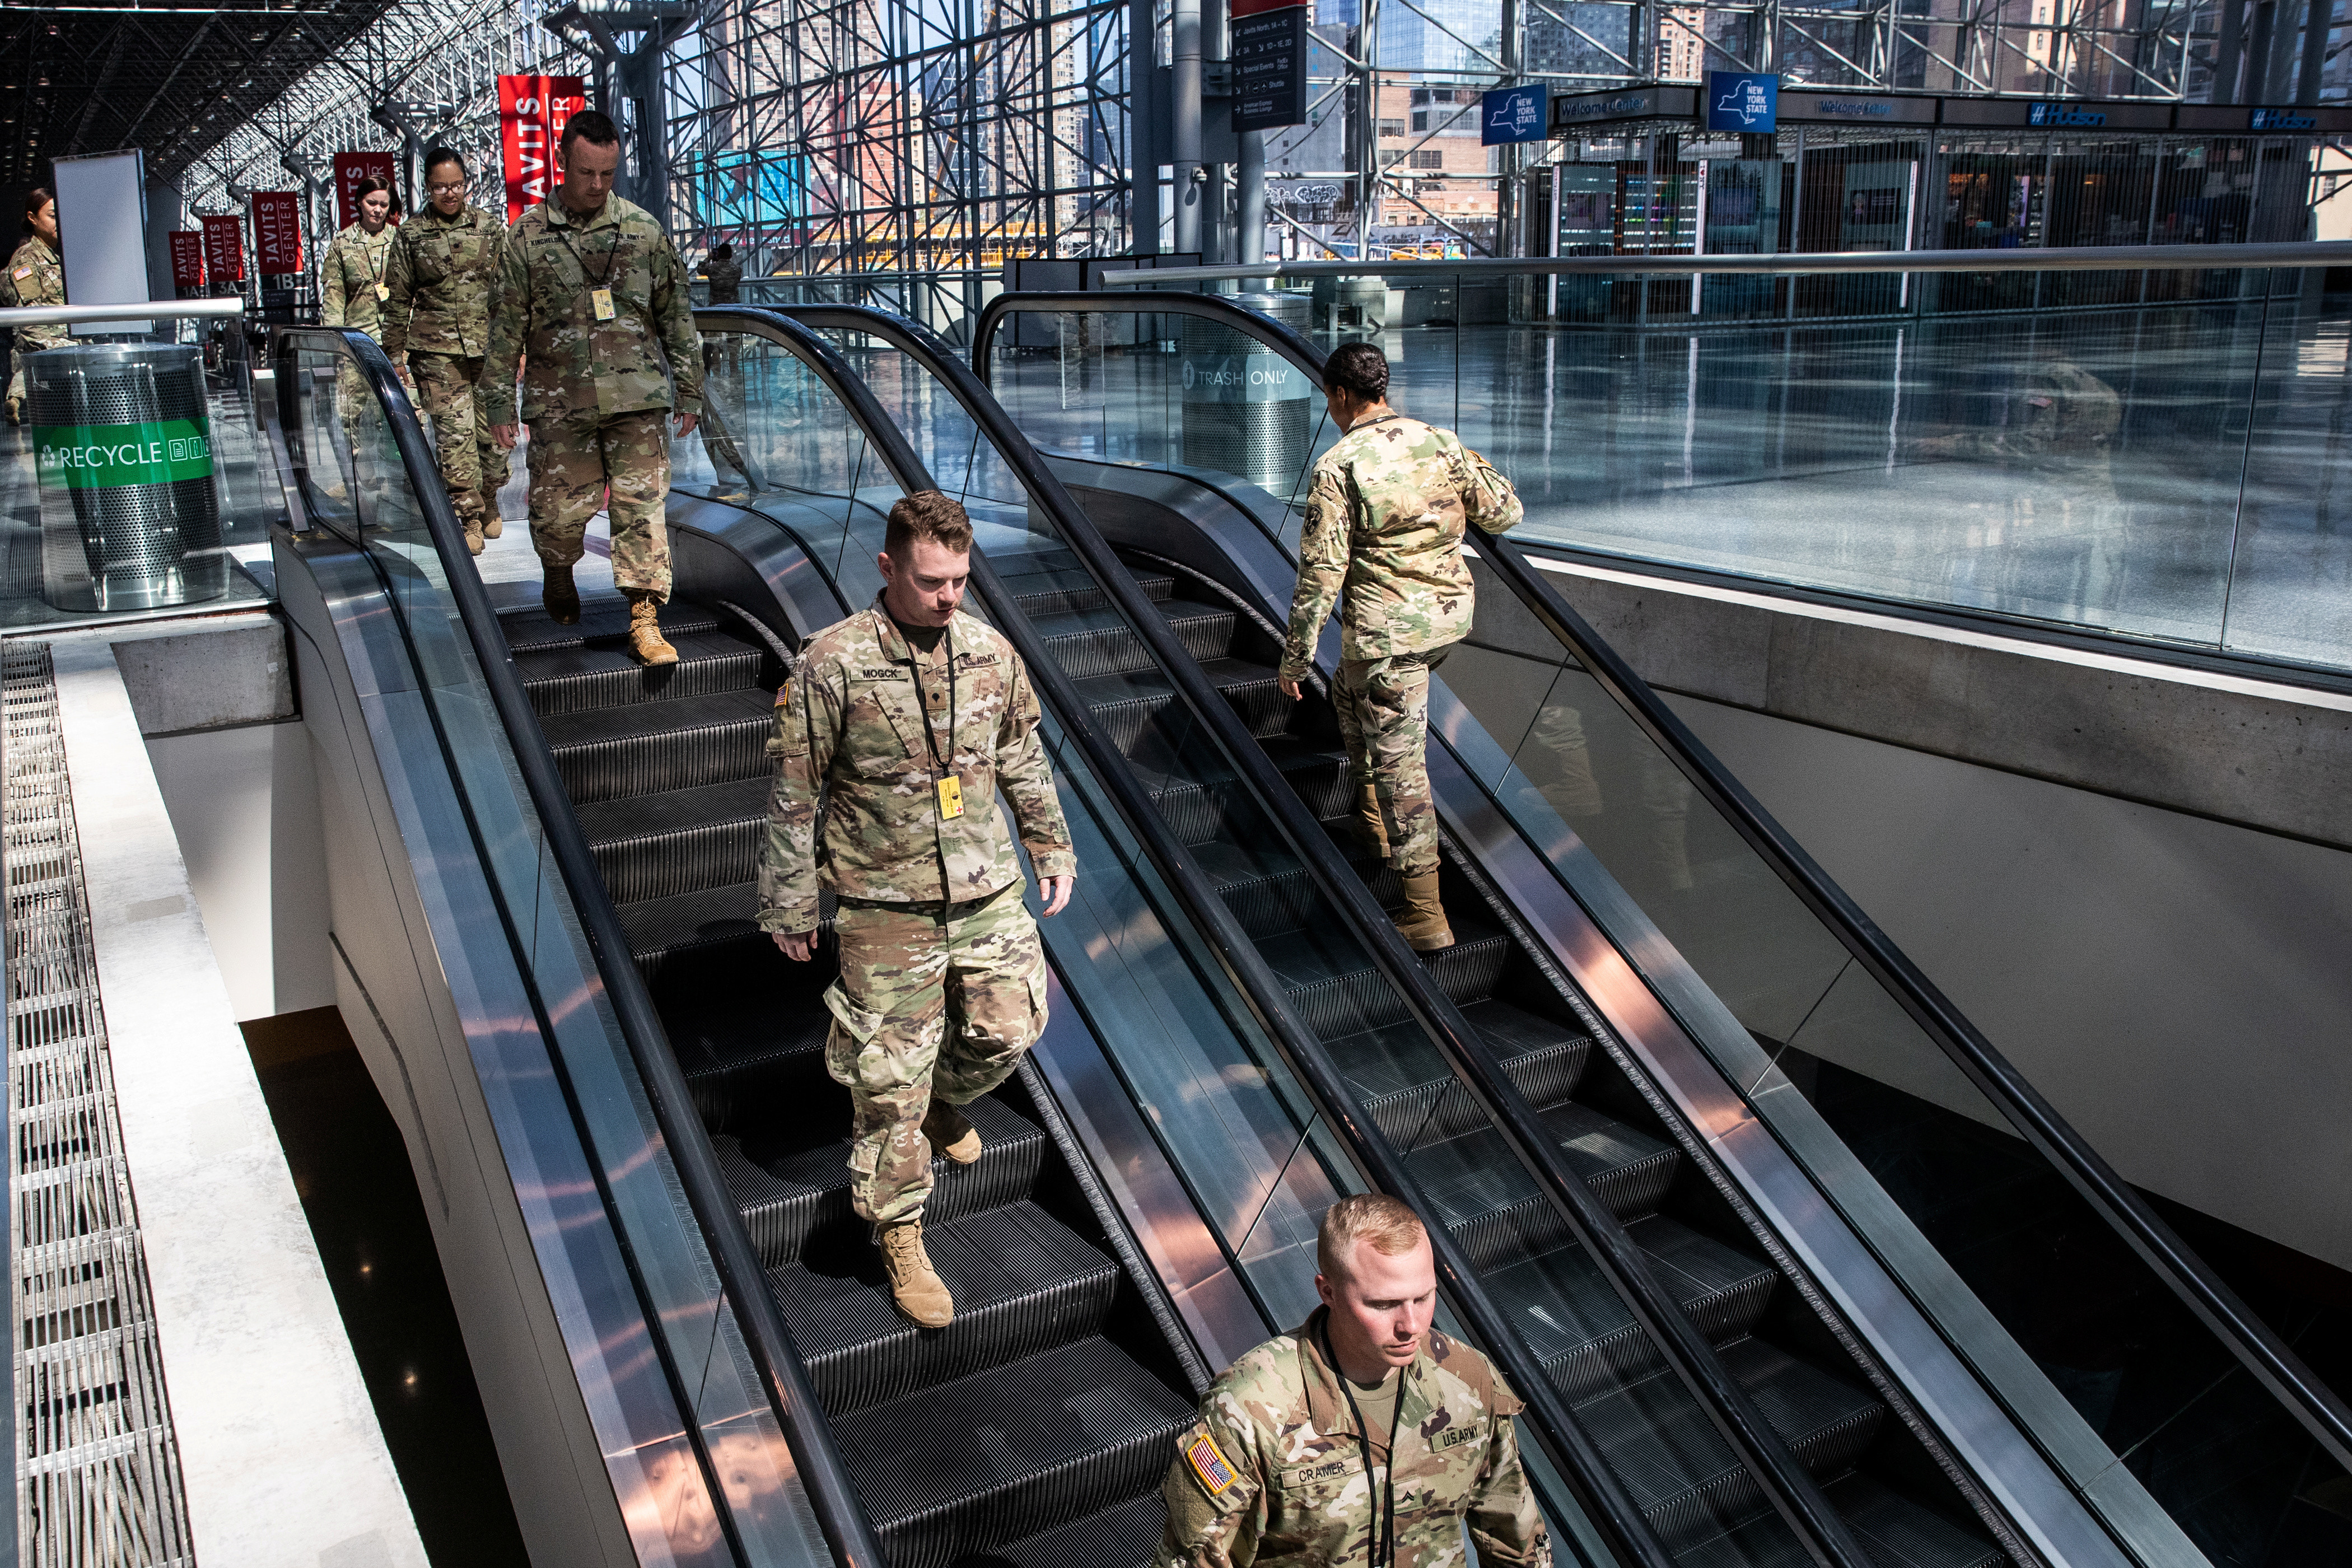 U.S. Army personnel are seen at the Jacob K. Javits Convention Center, which will be partially converted into a hospital for patients affected by the coronavirus disease (COVID-19) in Manhattan in New York City, New York, U.S., March 27, 2020. REUTERS/Jeenah Moon - RC2ISF9RFXJC